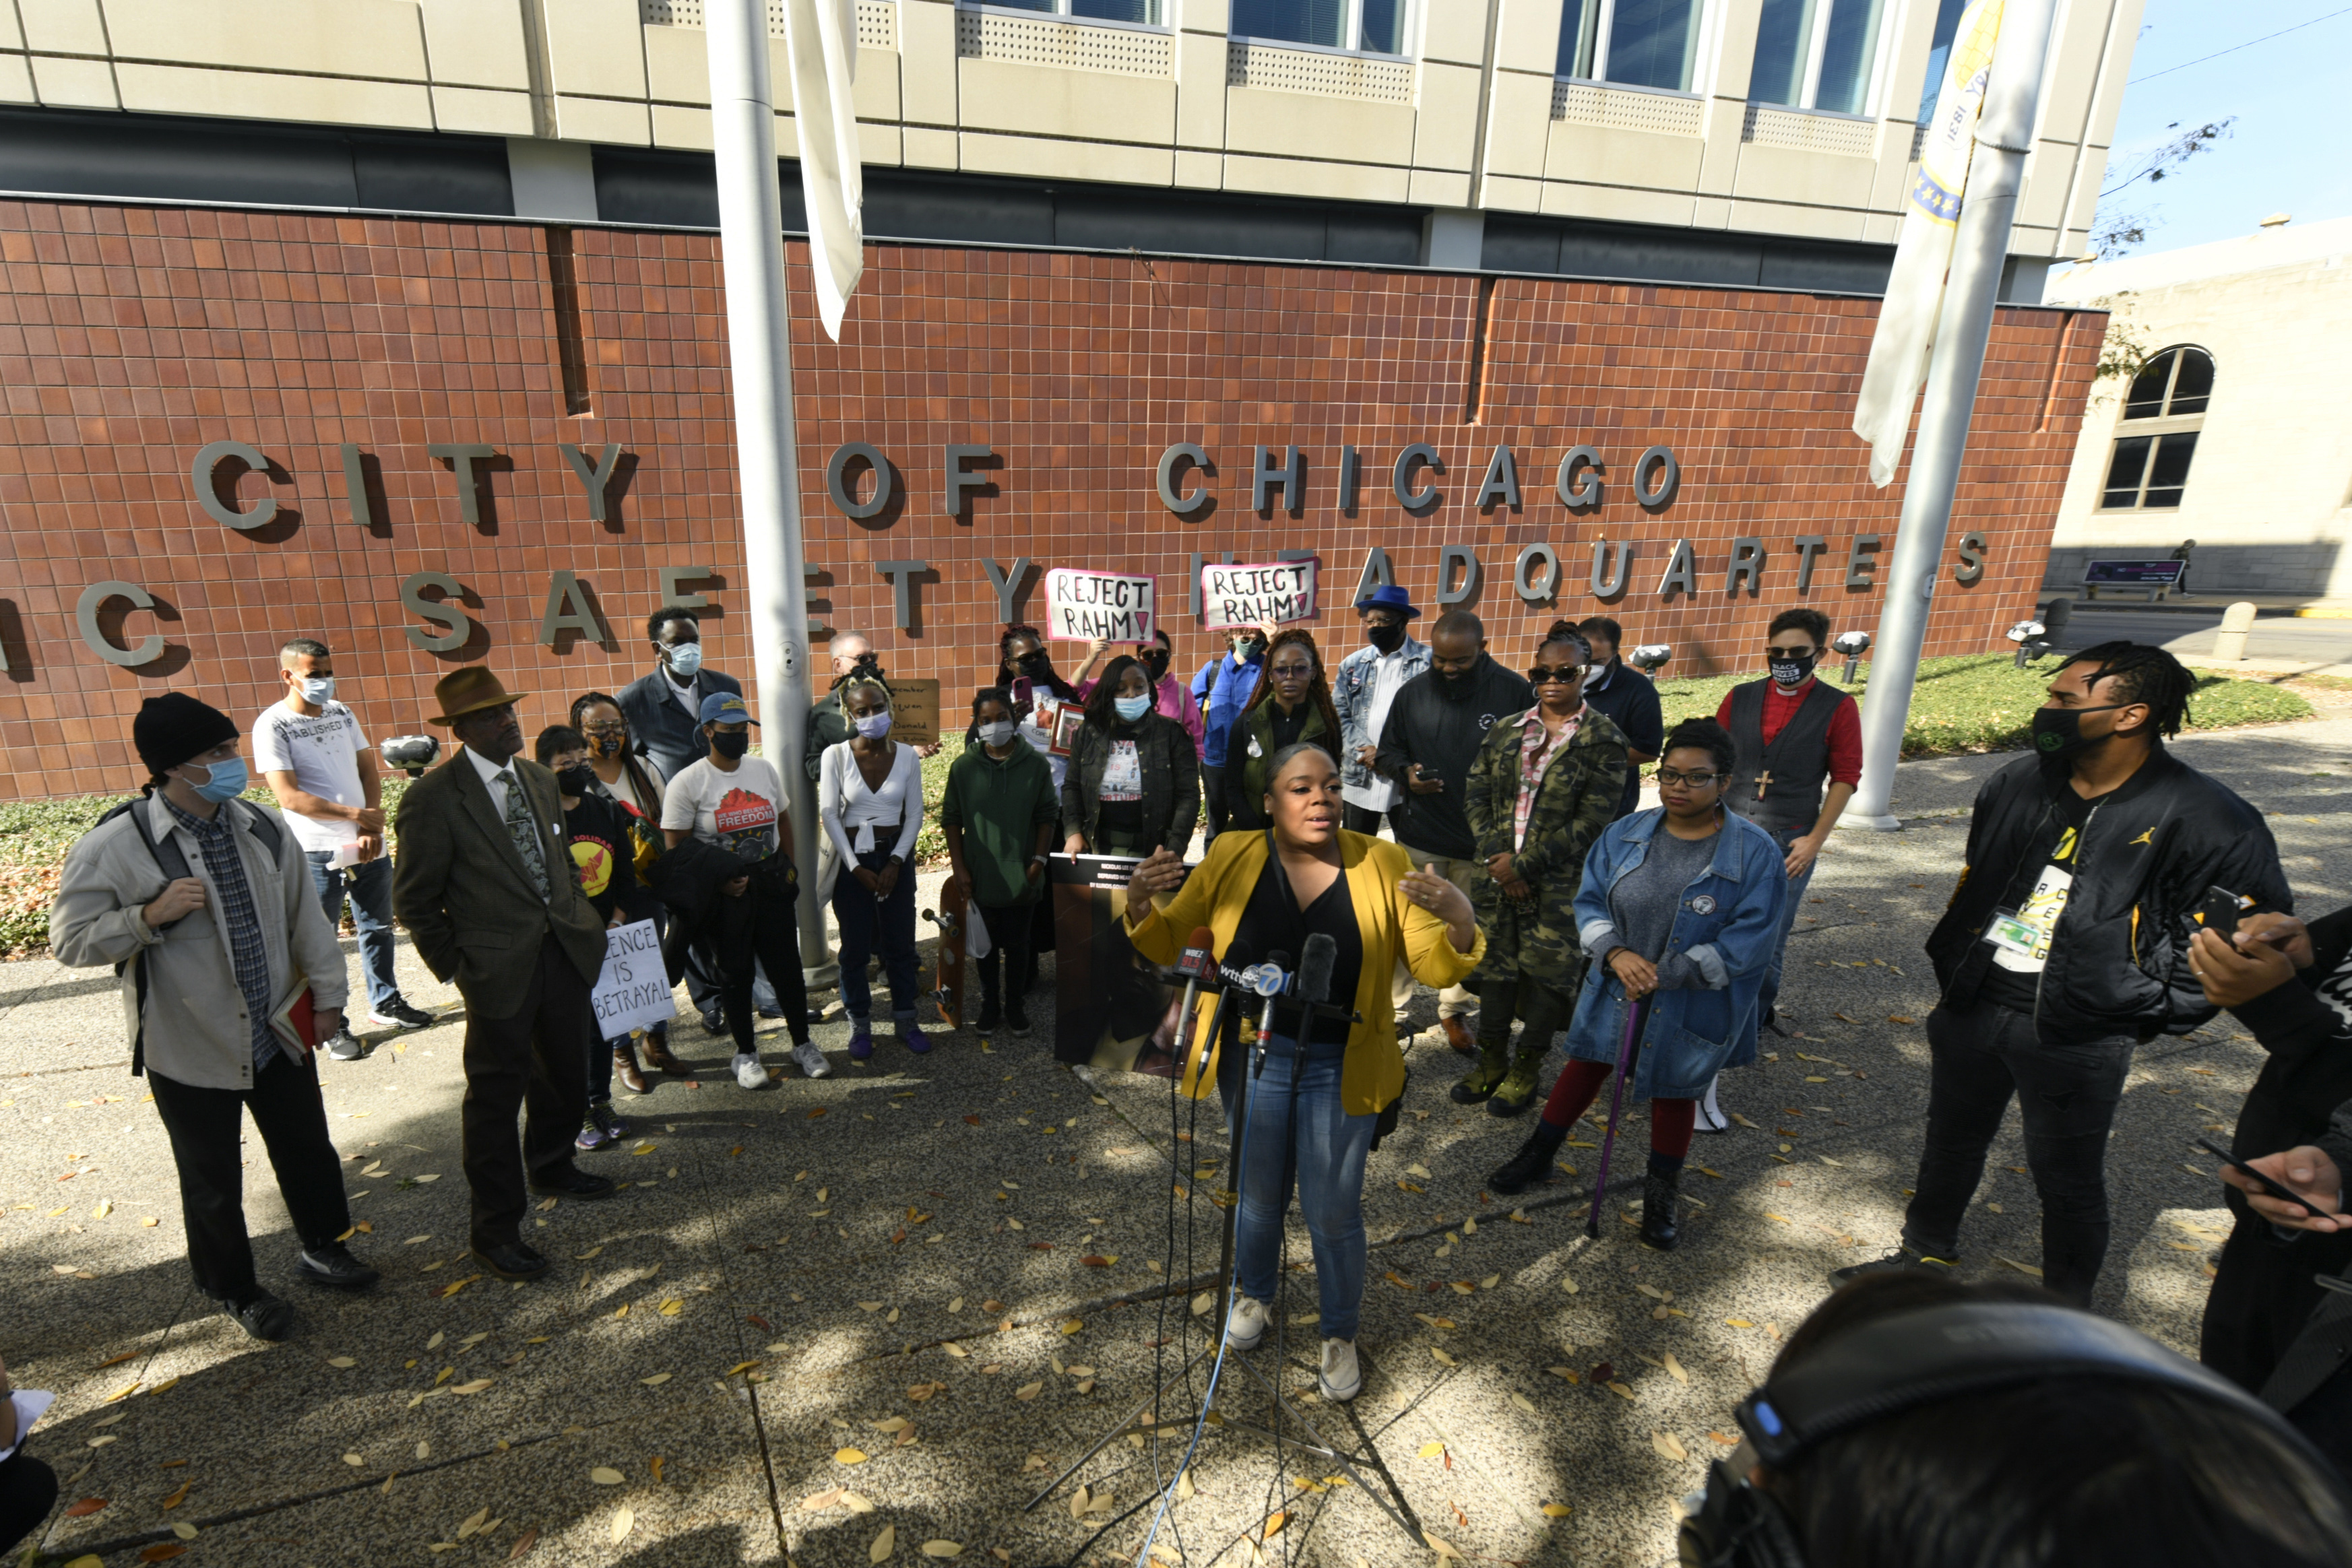 Citing the Laquan McDonald shooting by a Chicago police officer, activists protest Rahm Emanuel's nomination to be U.S. ambassador to Japan at the Chicago Police headquarters the day before his Senate confirmation hearing.